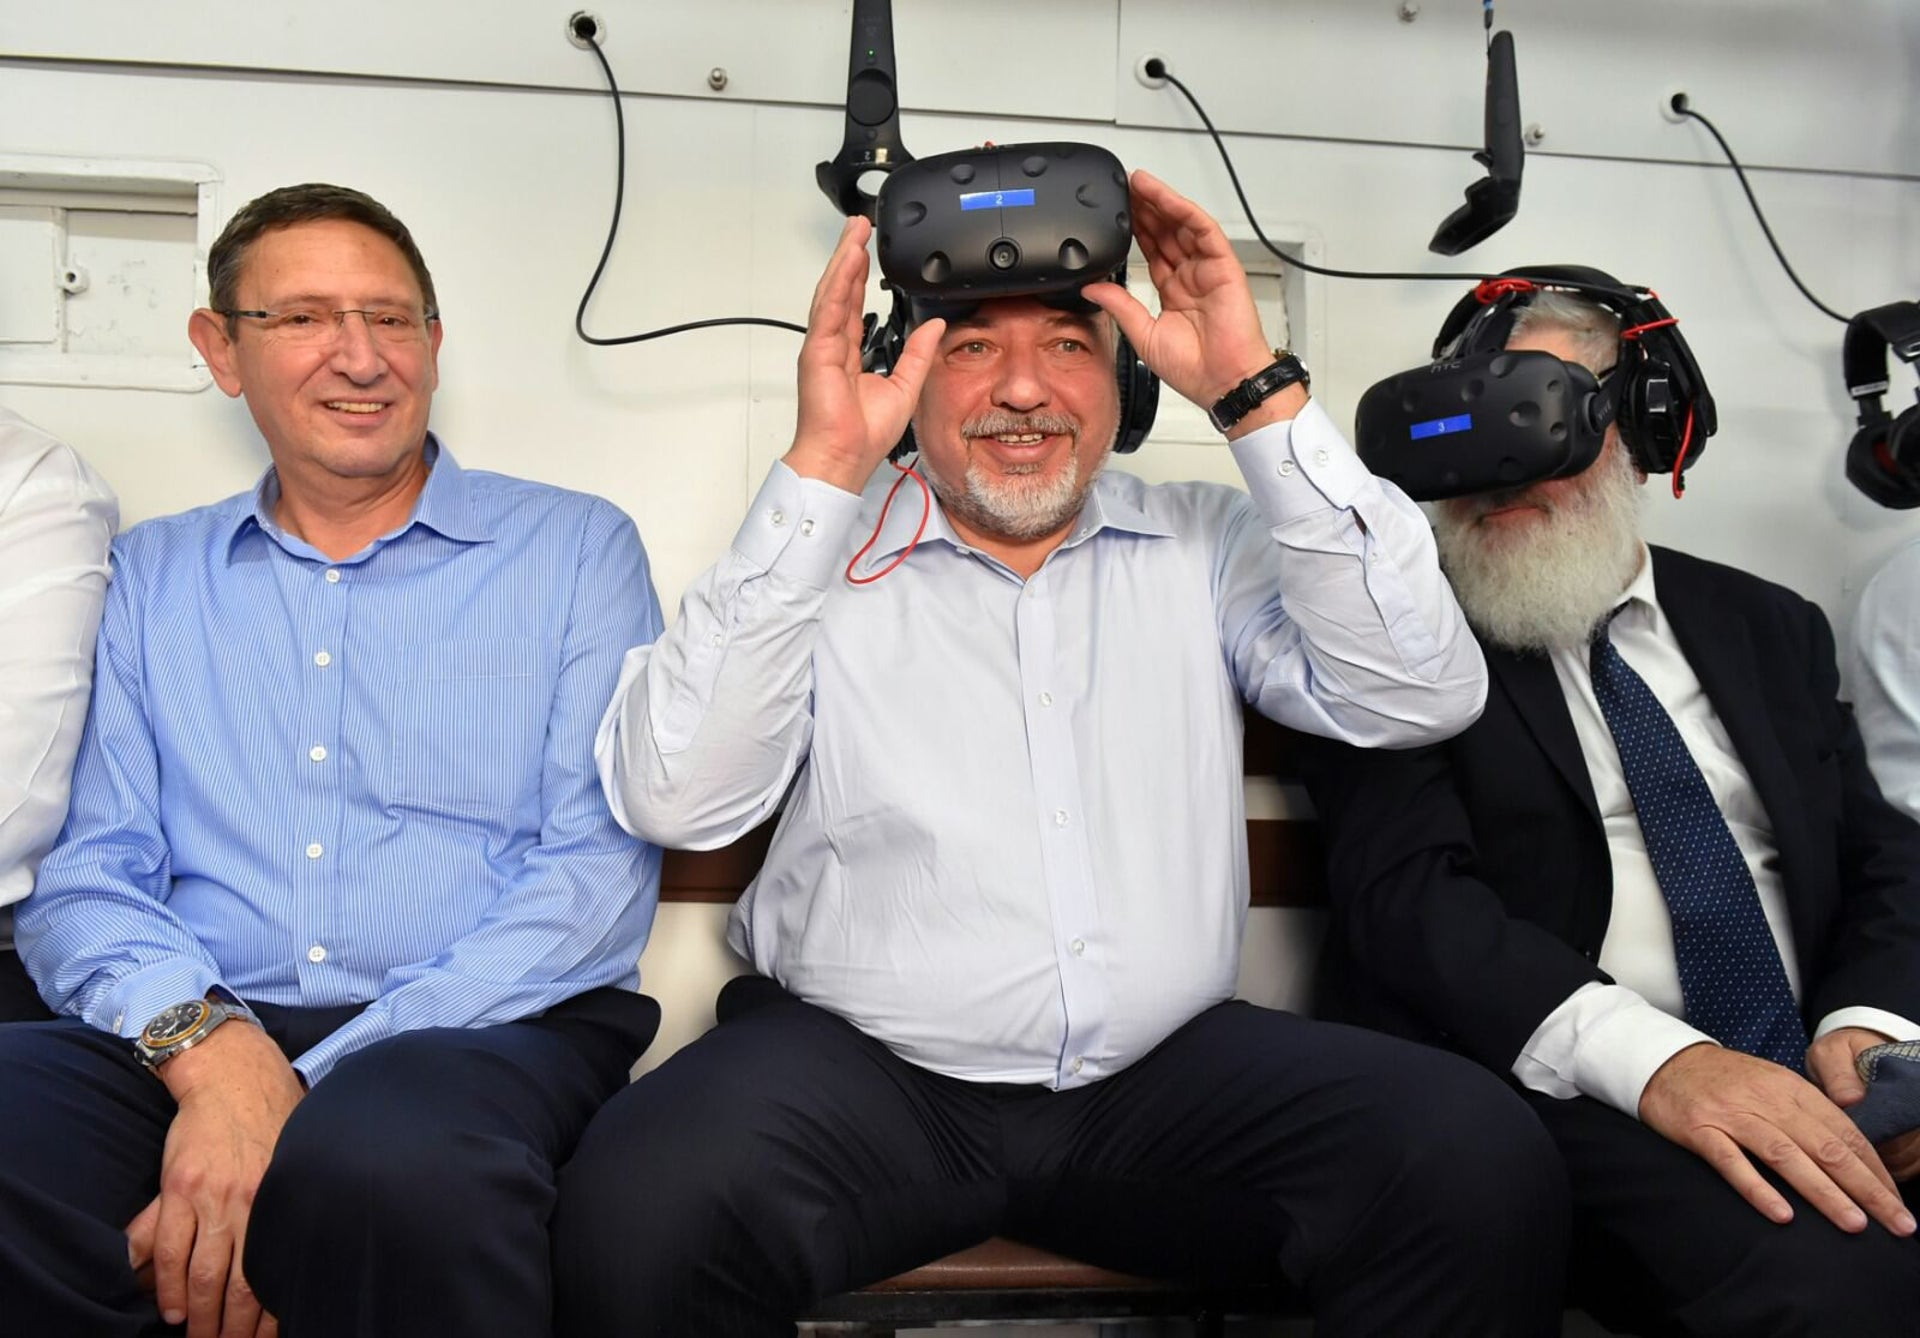 Defense Minister Avigdor Lieberman at the inauguration of a new museum, May 17, 2018.